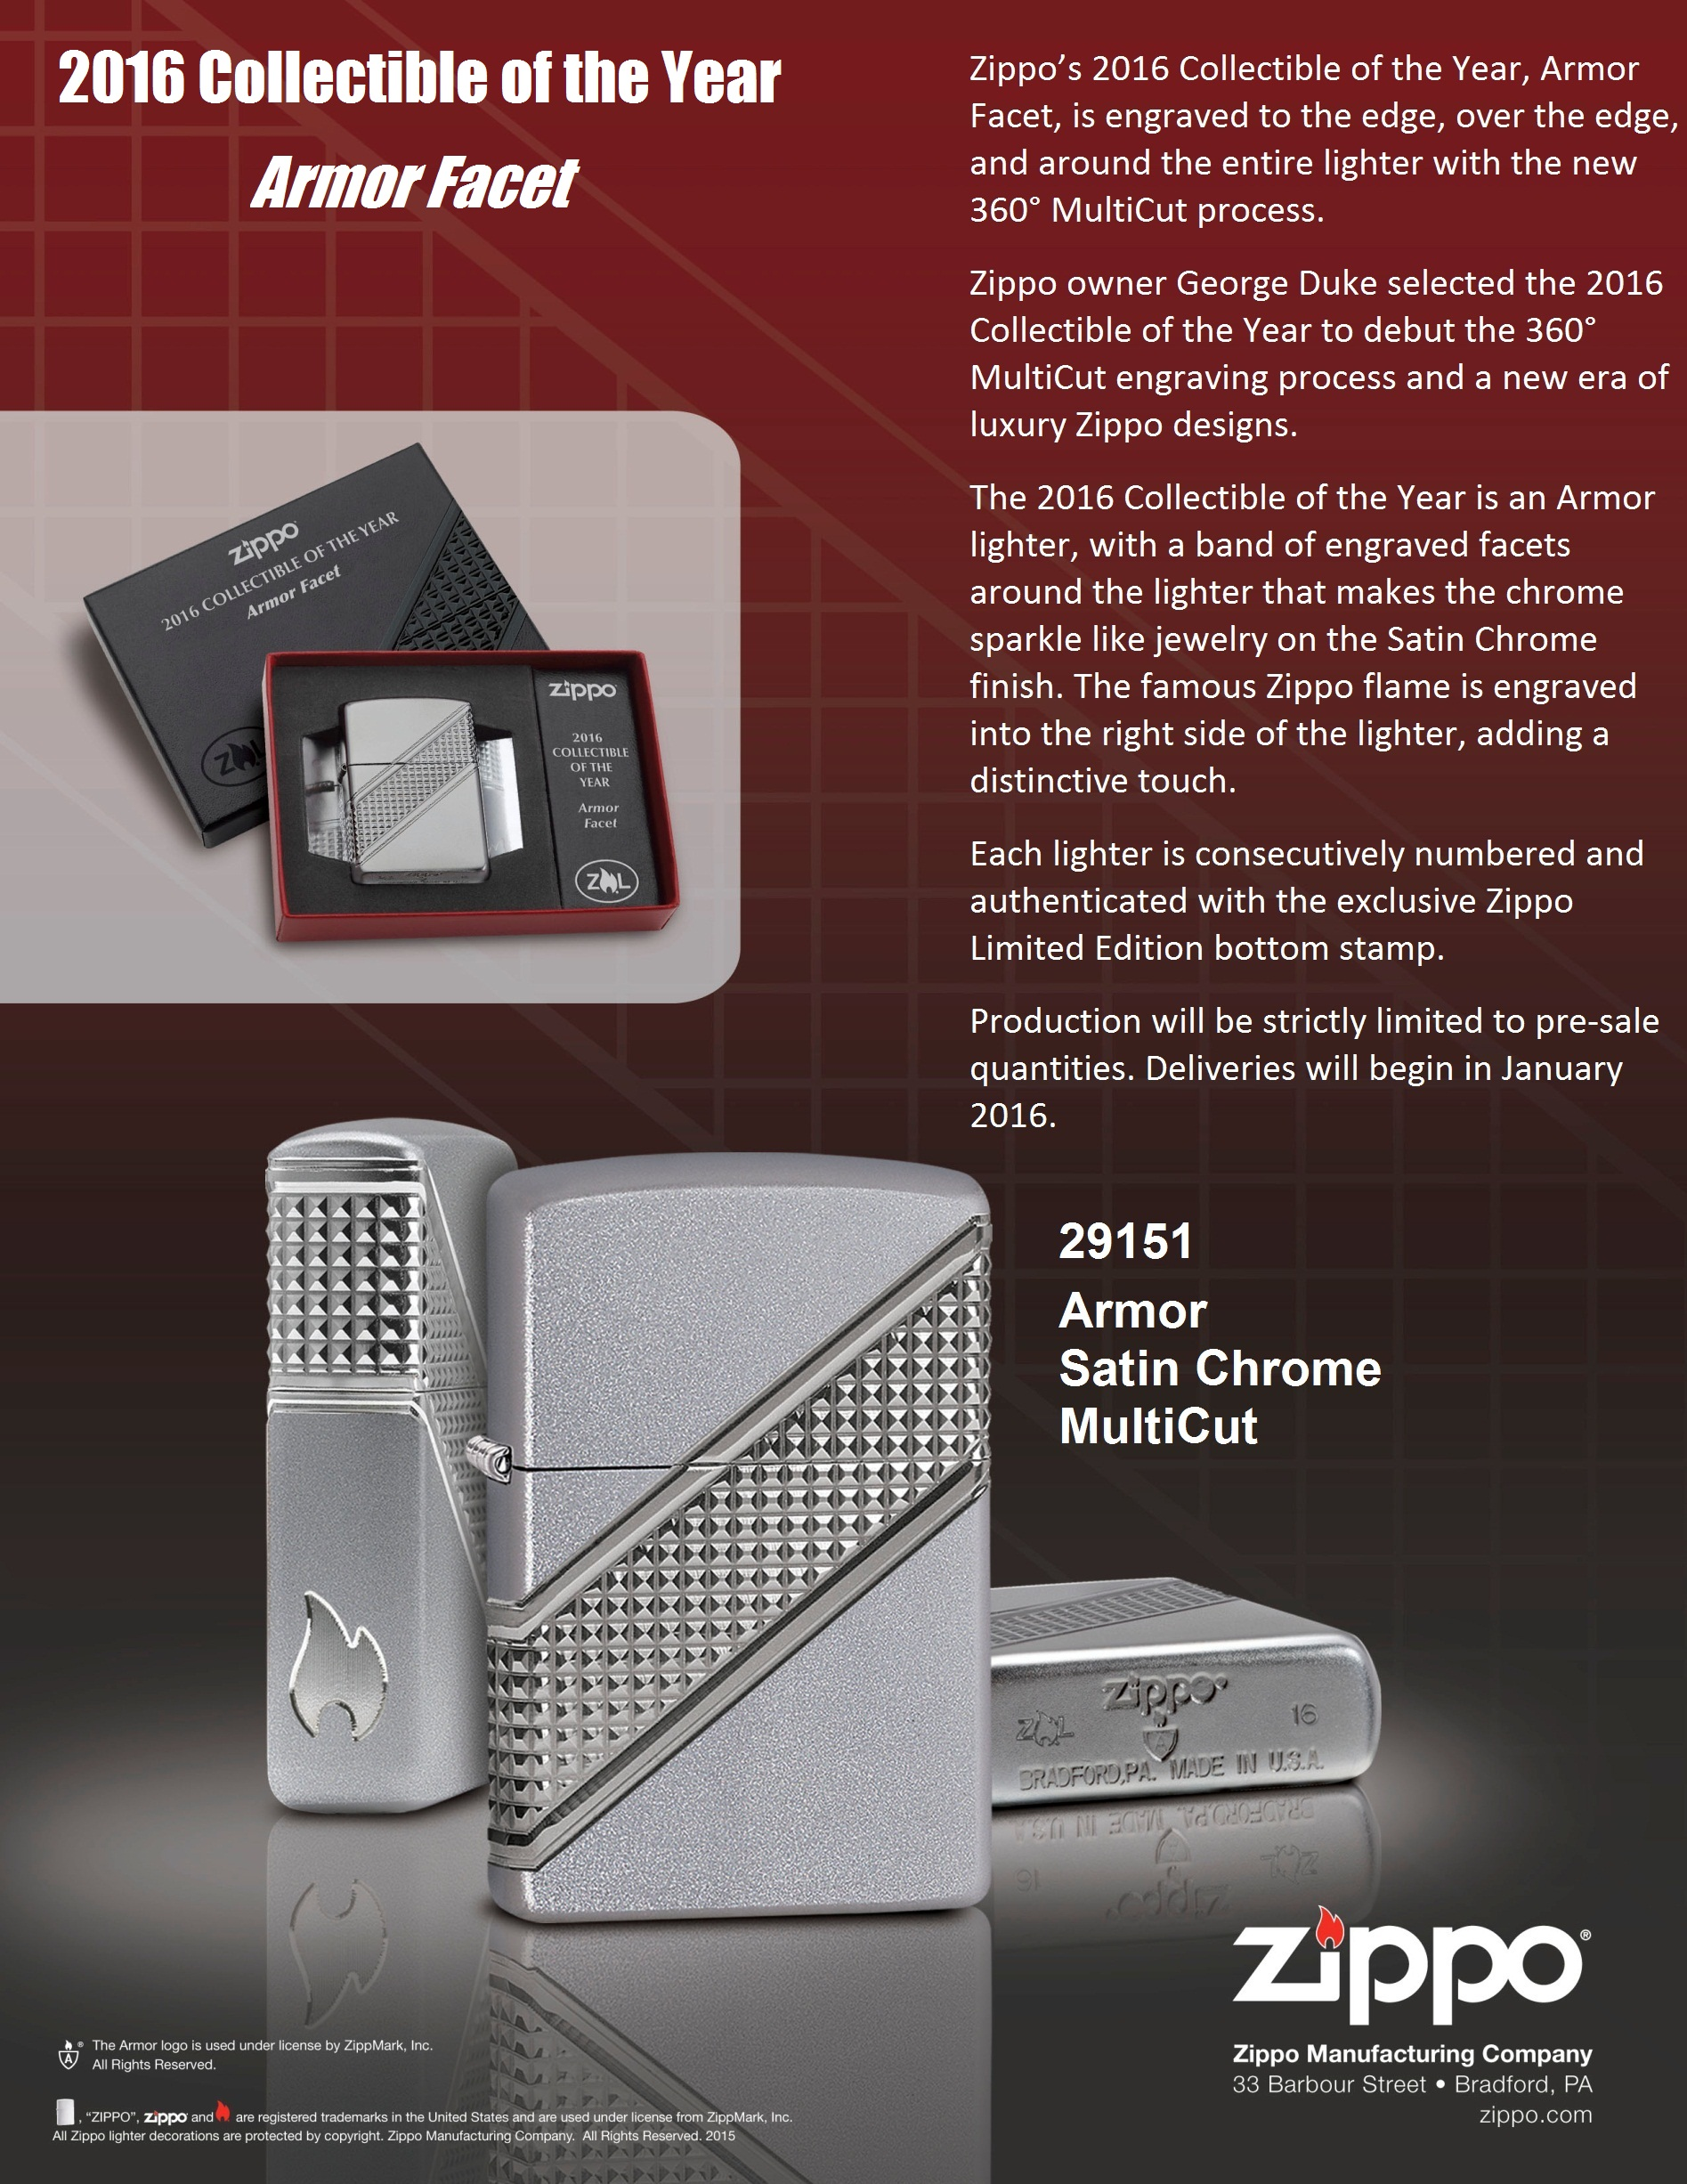 ZIPPO COTY 2016 – 2016 COLLECTIBLE OF THE YEAR – ARMOR™ FACET